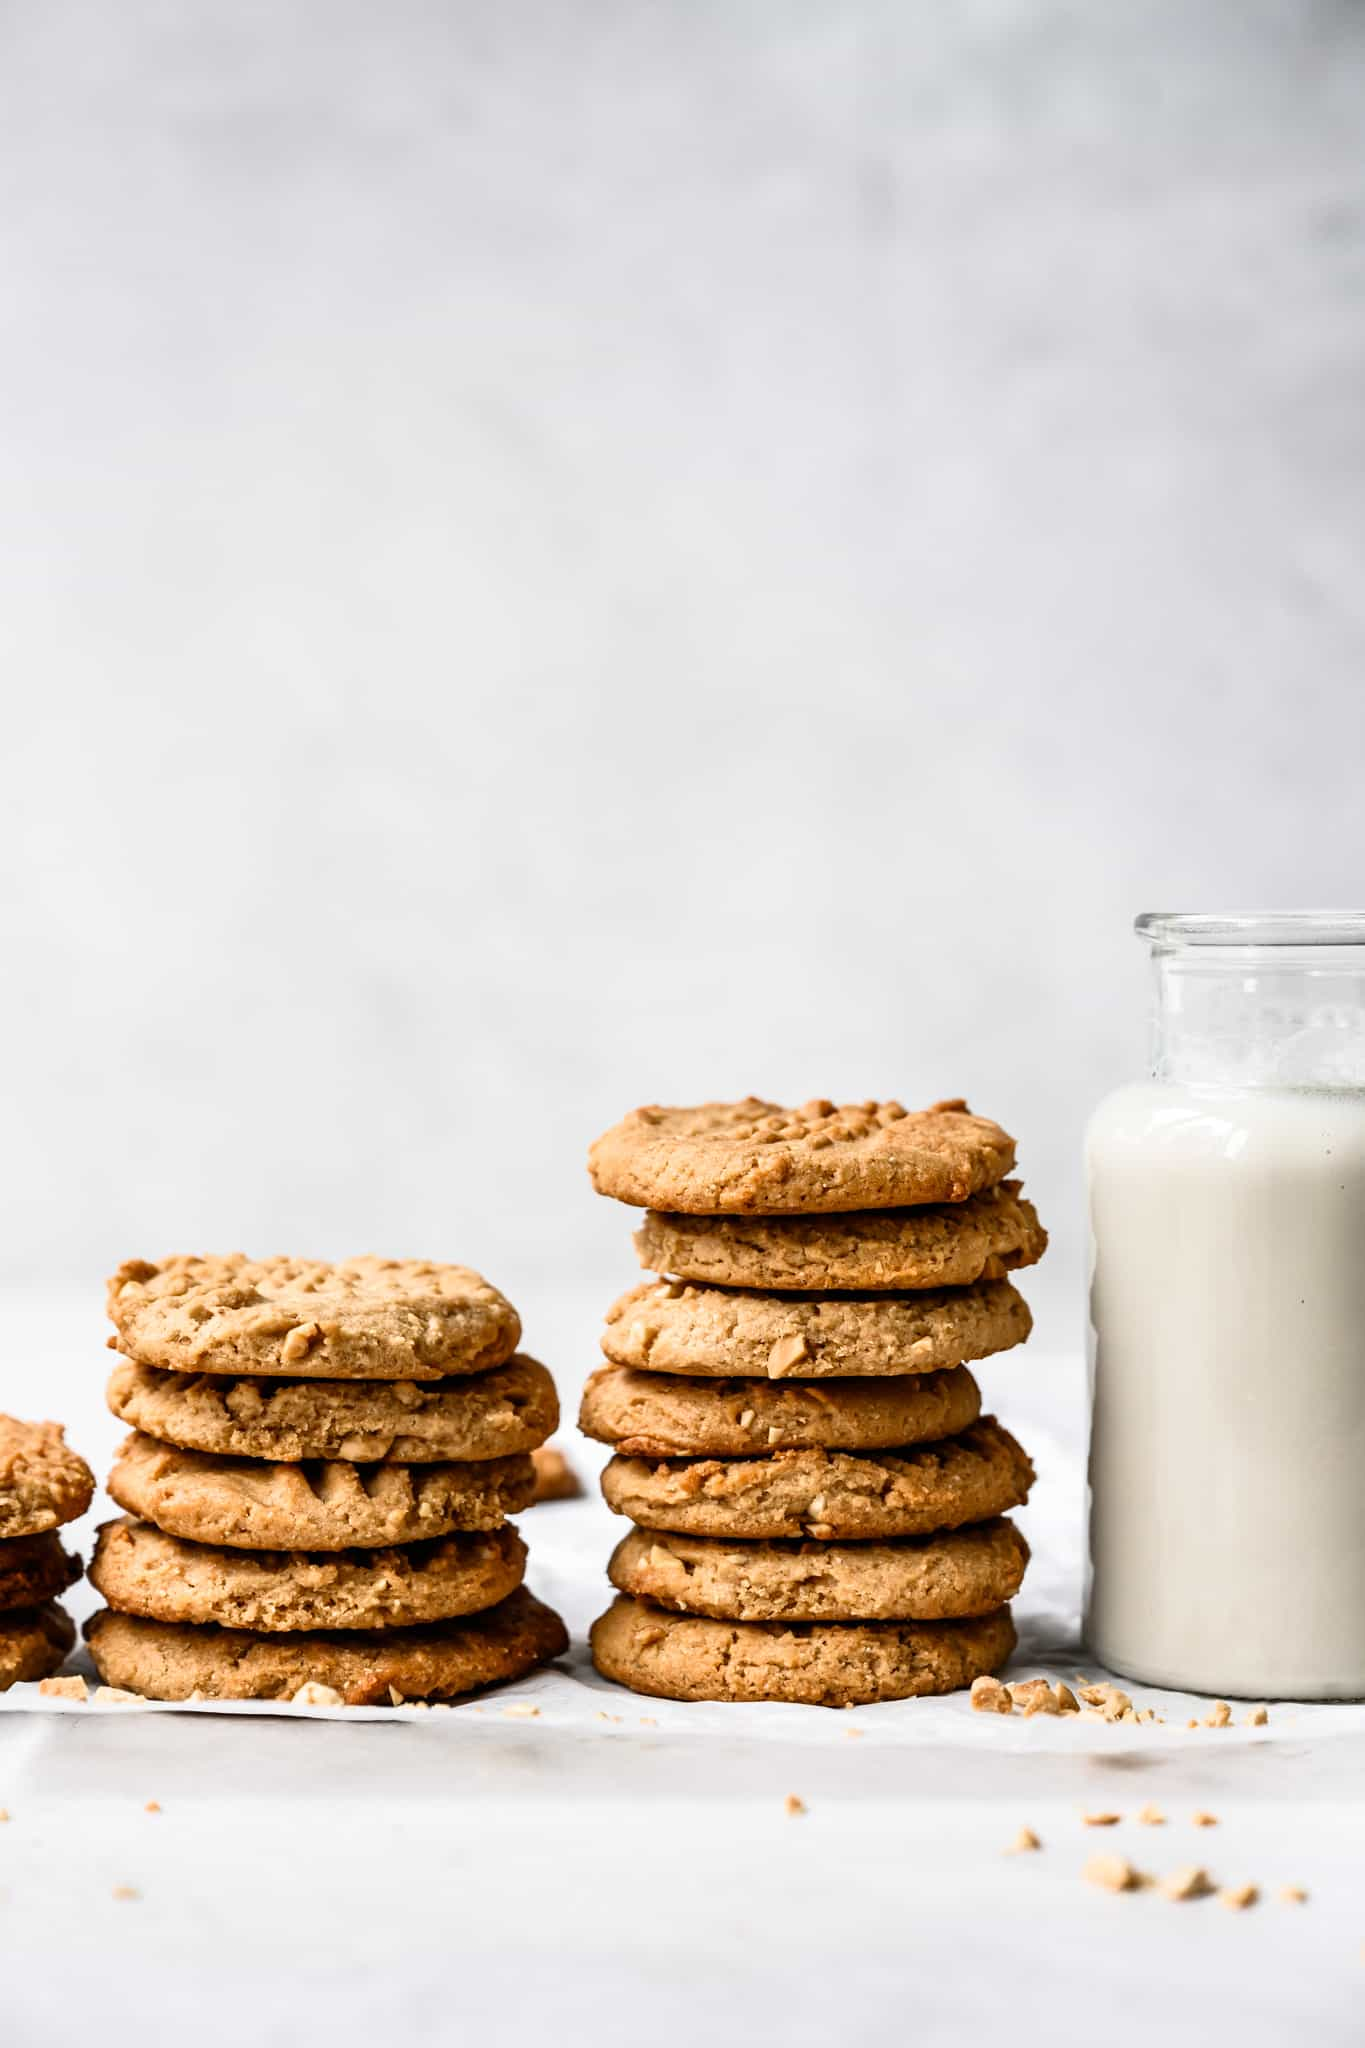 side view of two stacks of vegan gluten free peanut butter cookies next to glass of milk